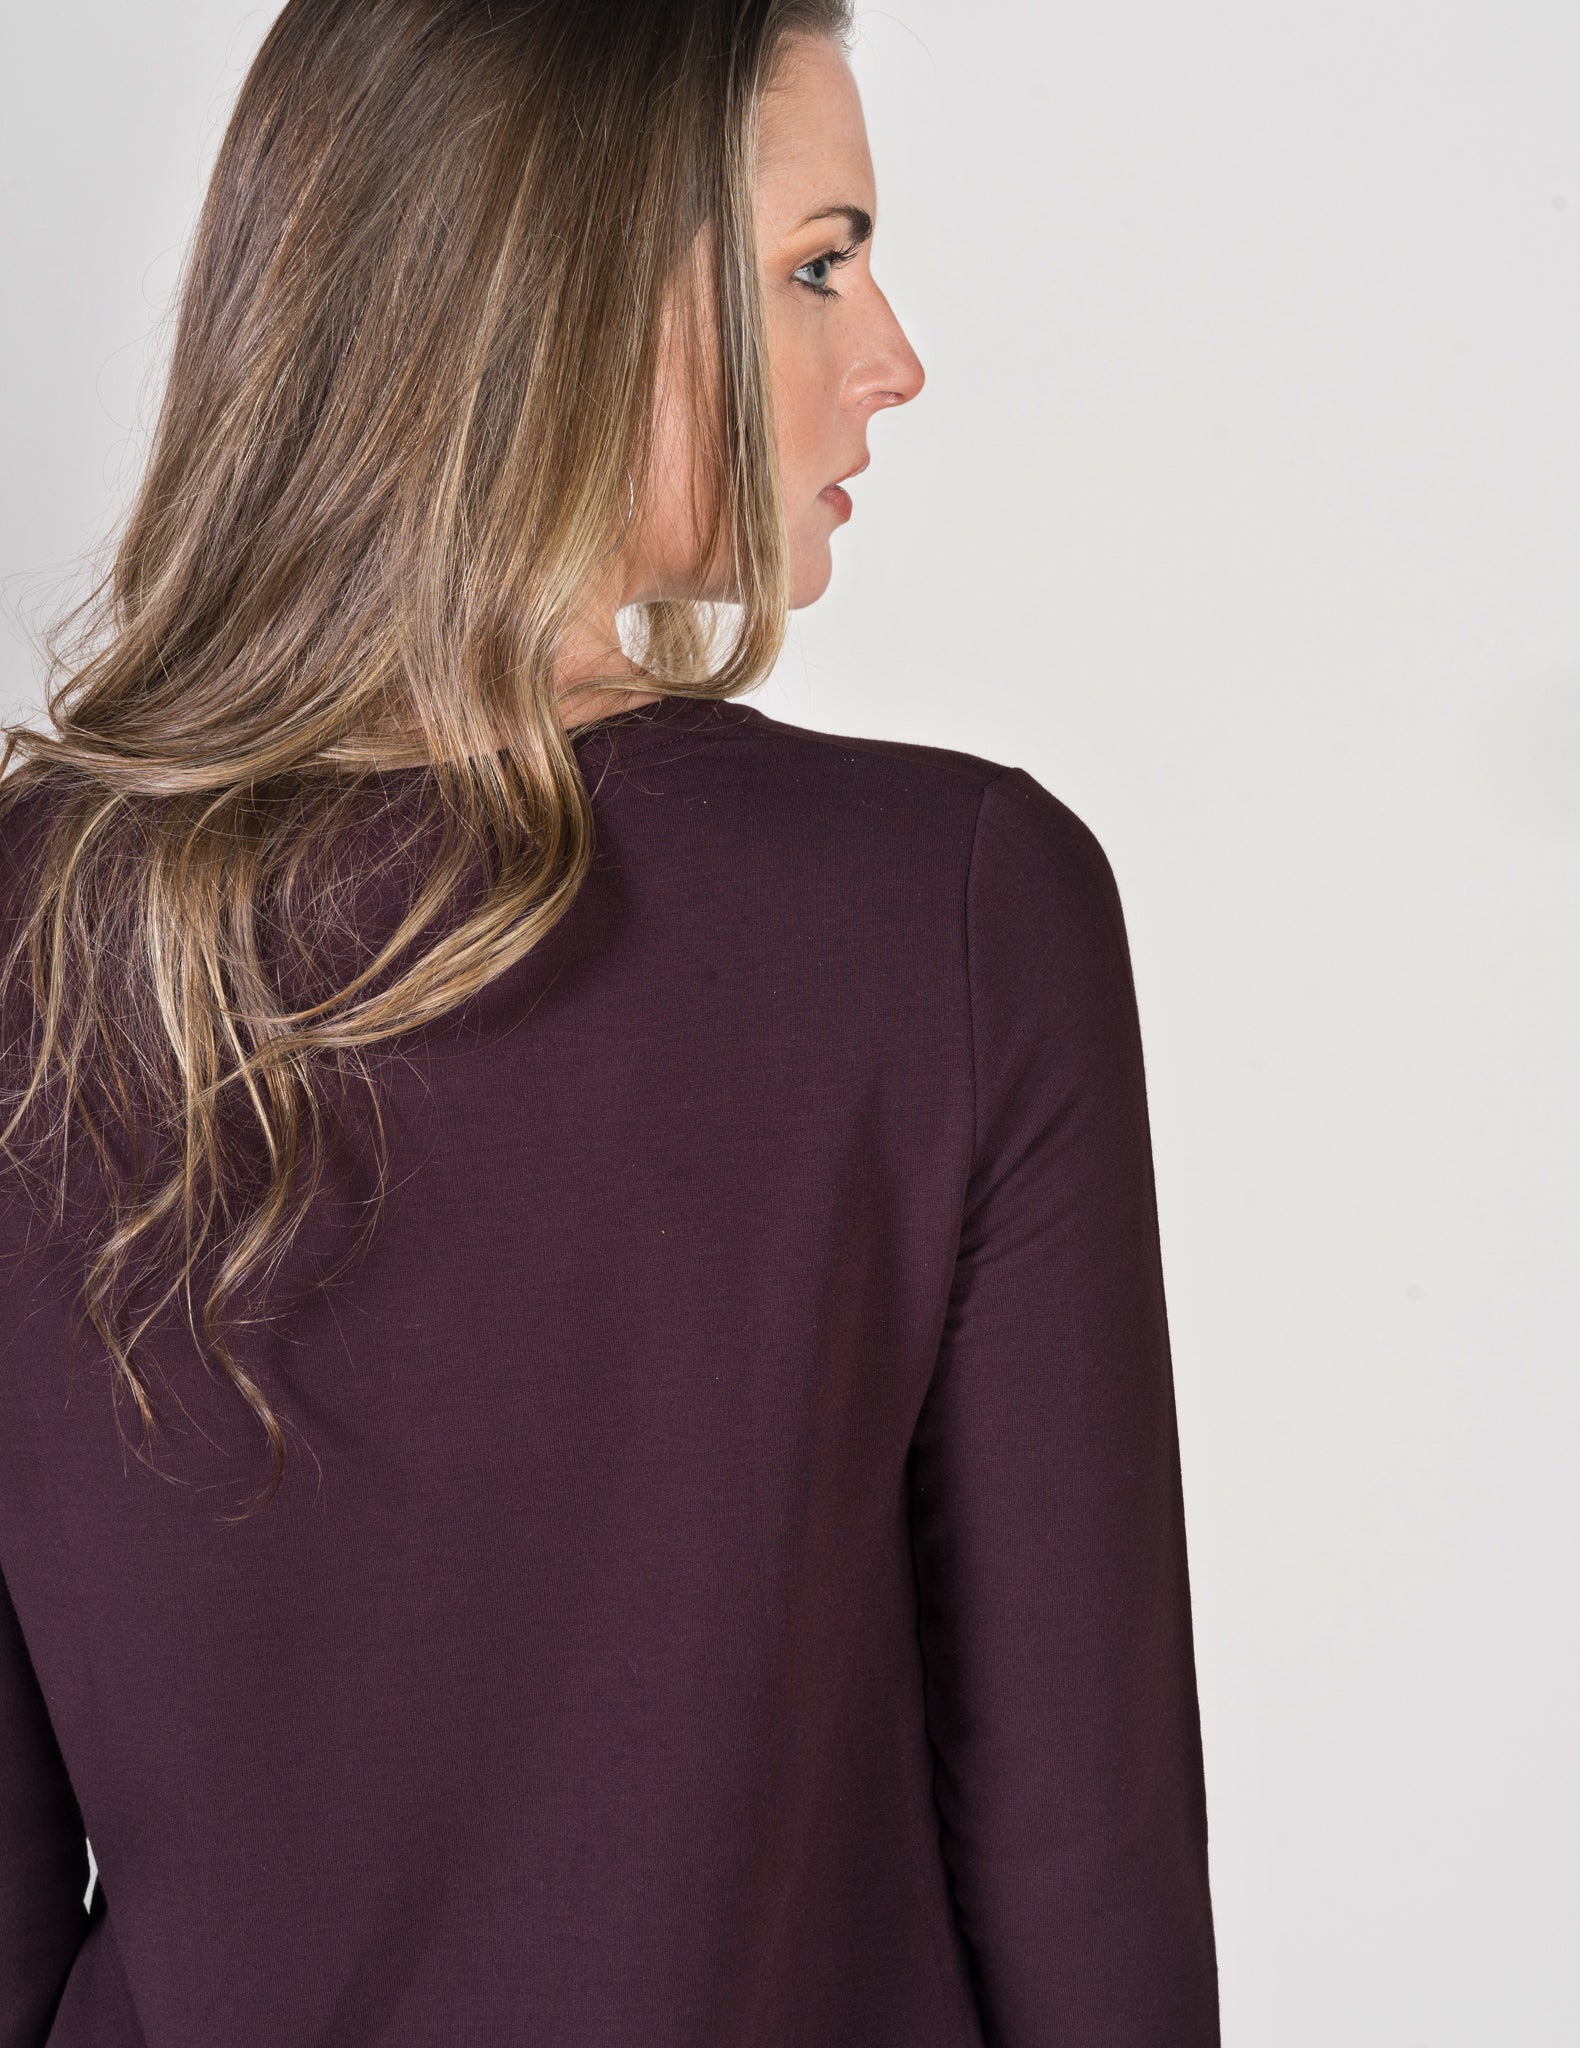 Majestic Long Sleeve French Touch Crewneck in Aubergine